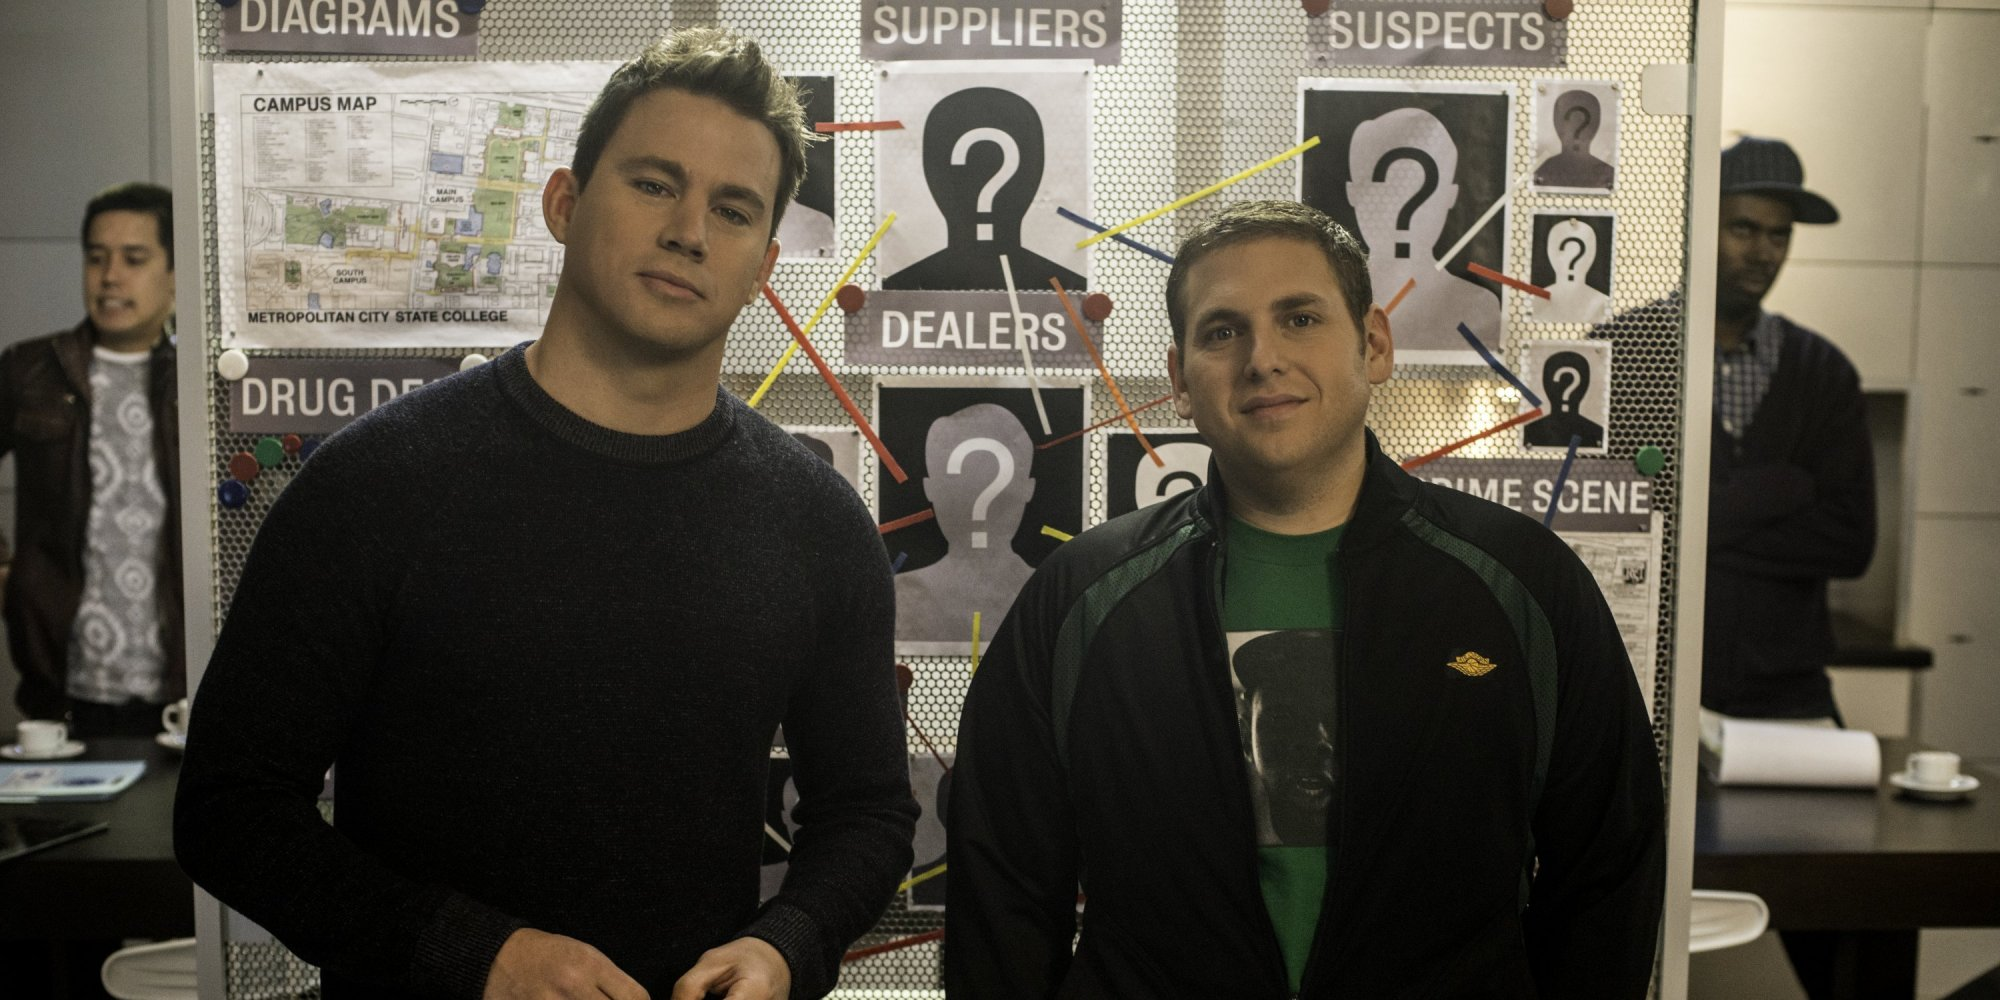 These Are The Best Parts Of '22 Jump Street'